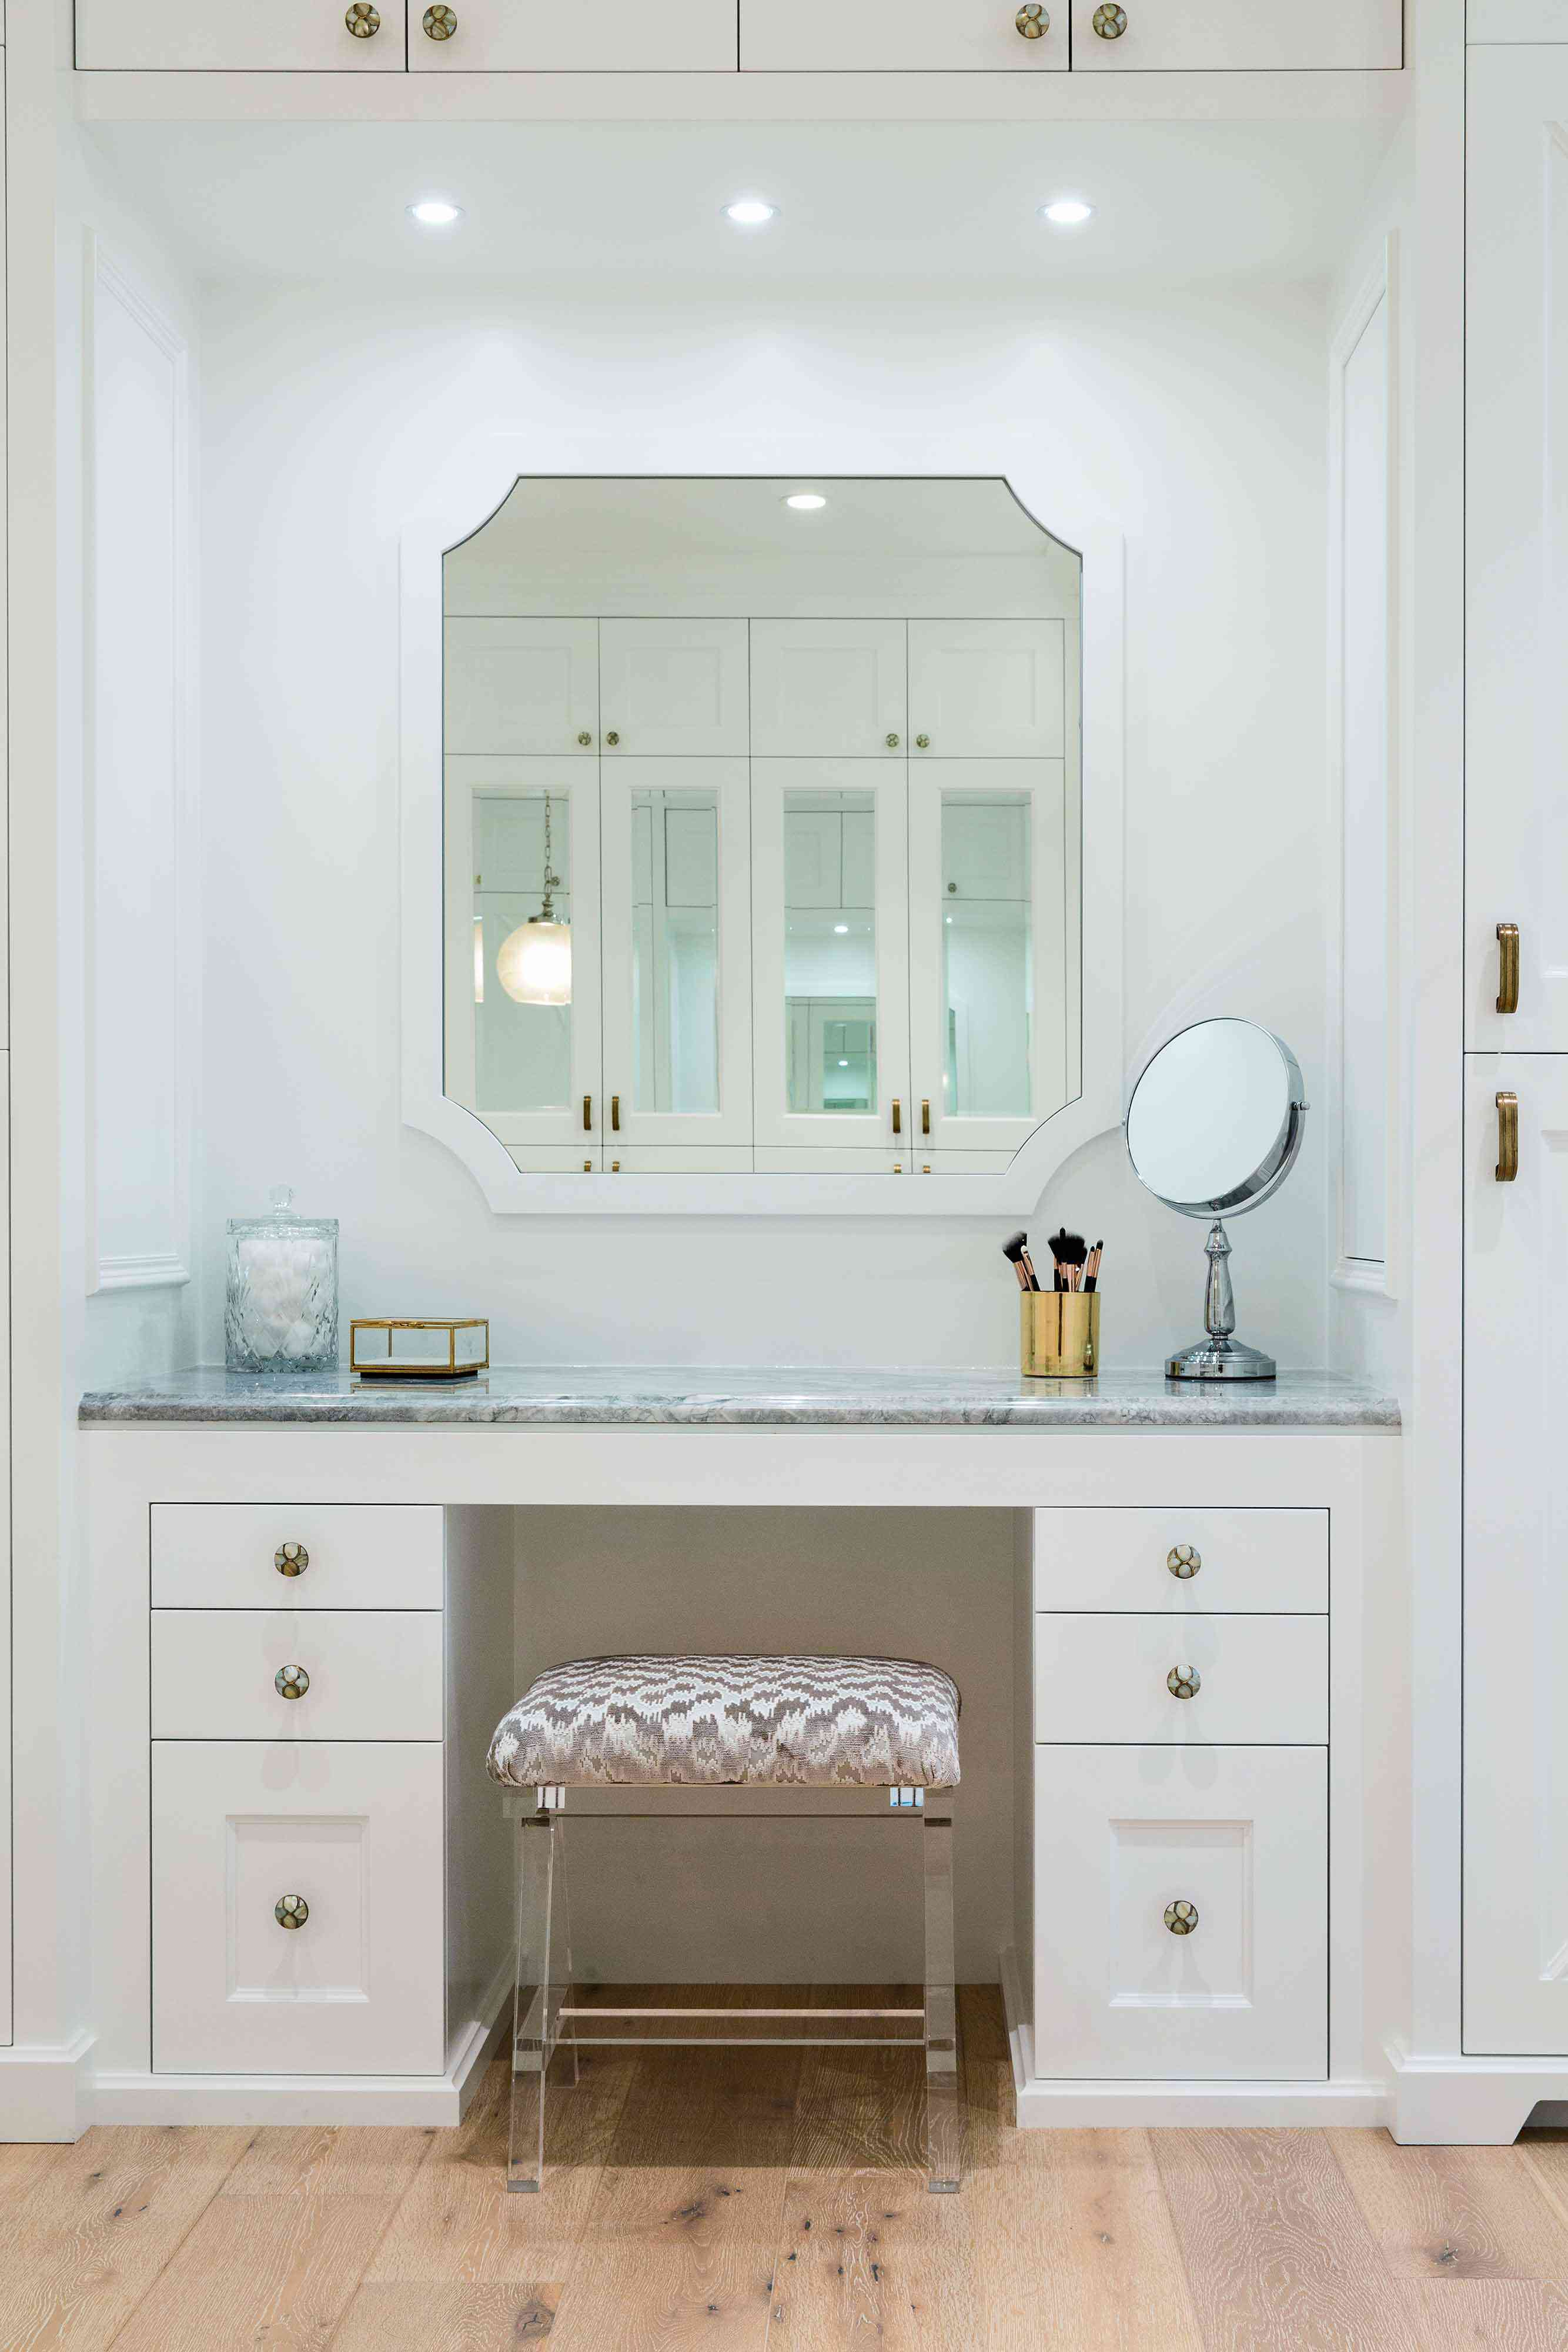 Vanity station in a walk-in closet